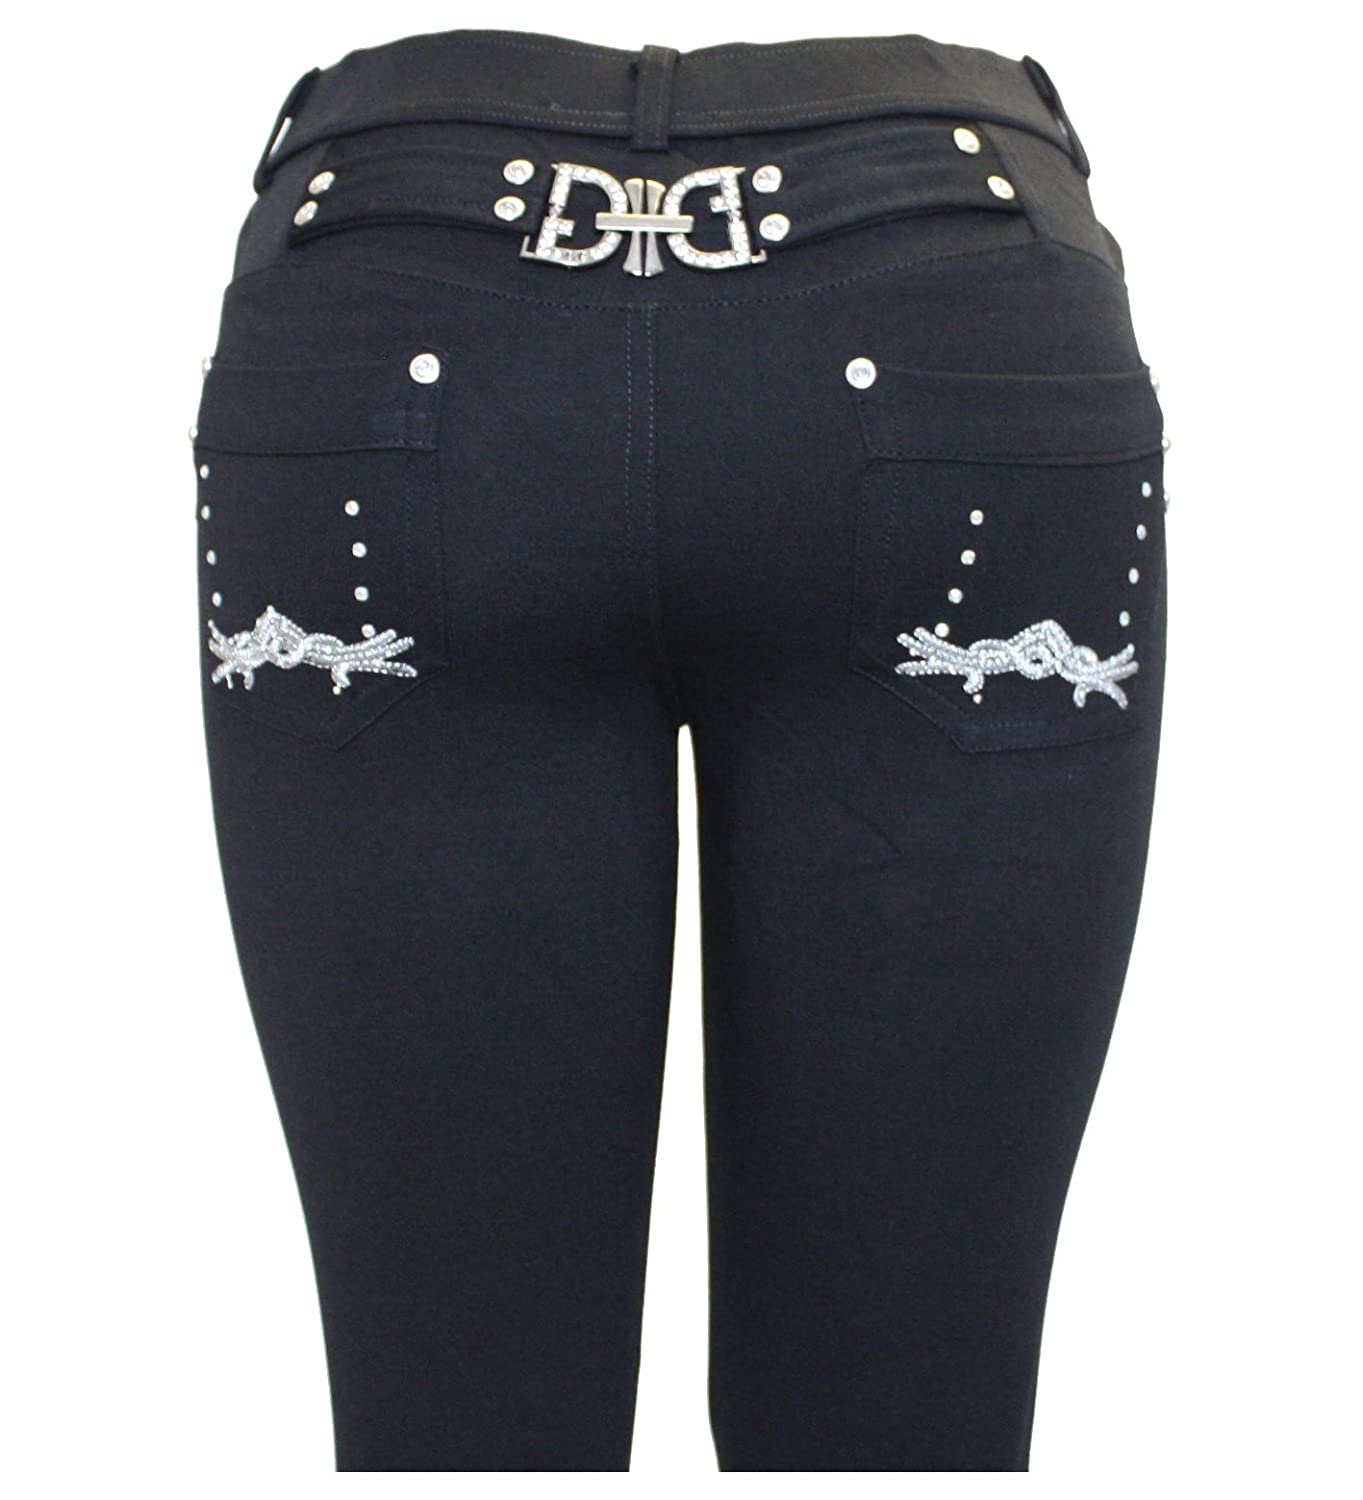 New Ladies Womens Black Fashion Stretchy Skinny Buckle Jegging Jeans Leggings 8-26